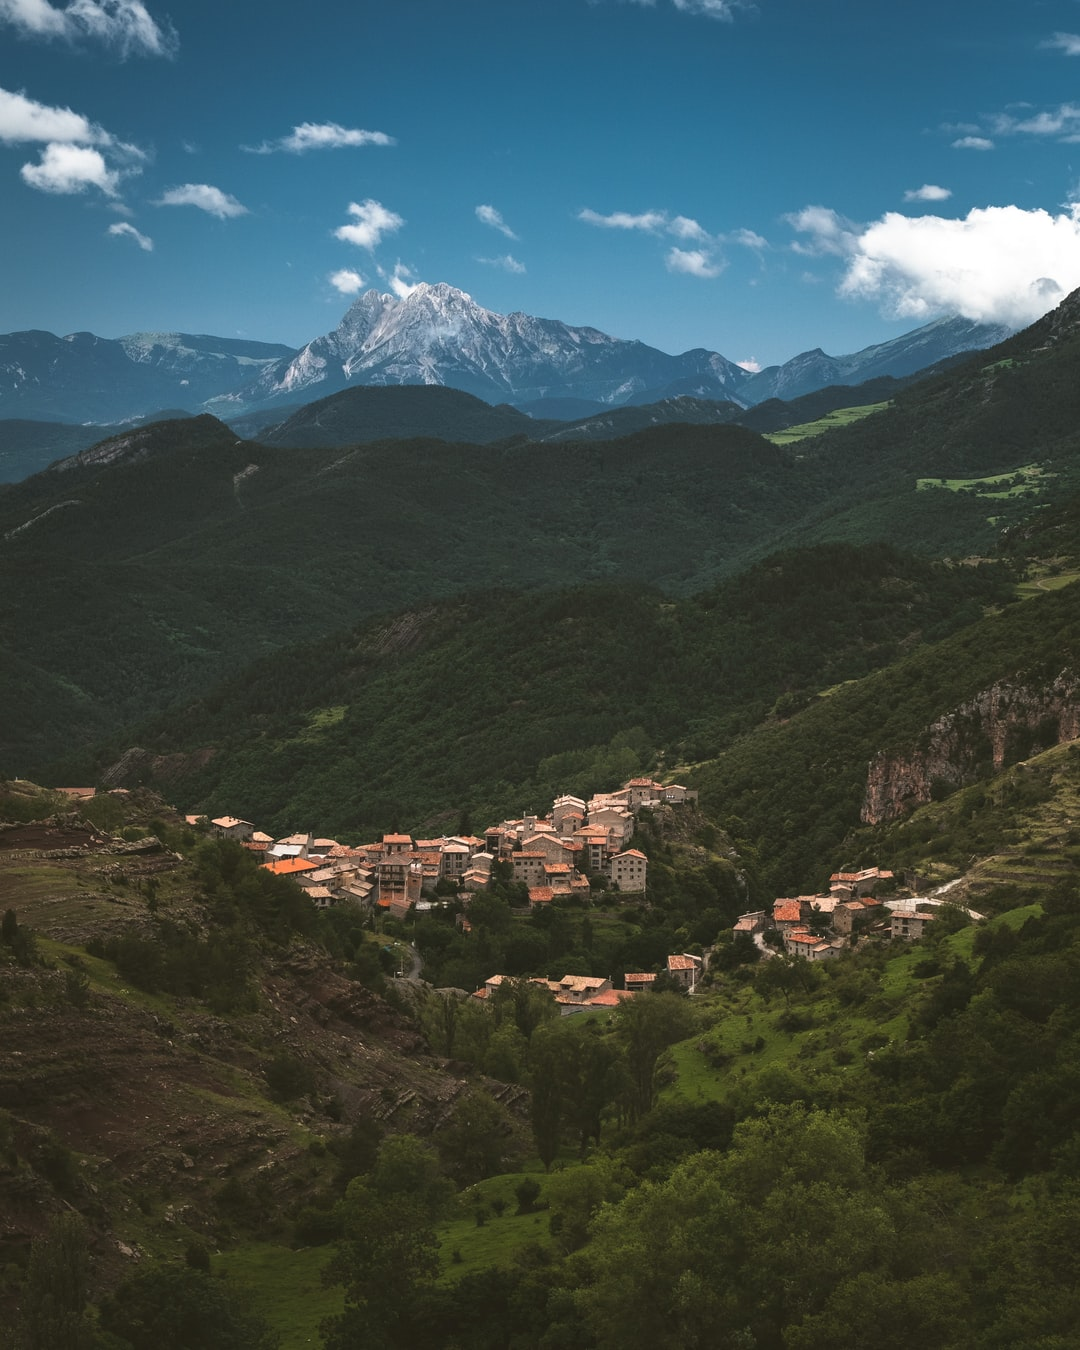 For the month of July I spent a month living with a buddy traveling on offroad routes through Spain and the Alps.  We happened across this incredible town nestled down in the Pyrenees mountain range.